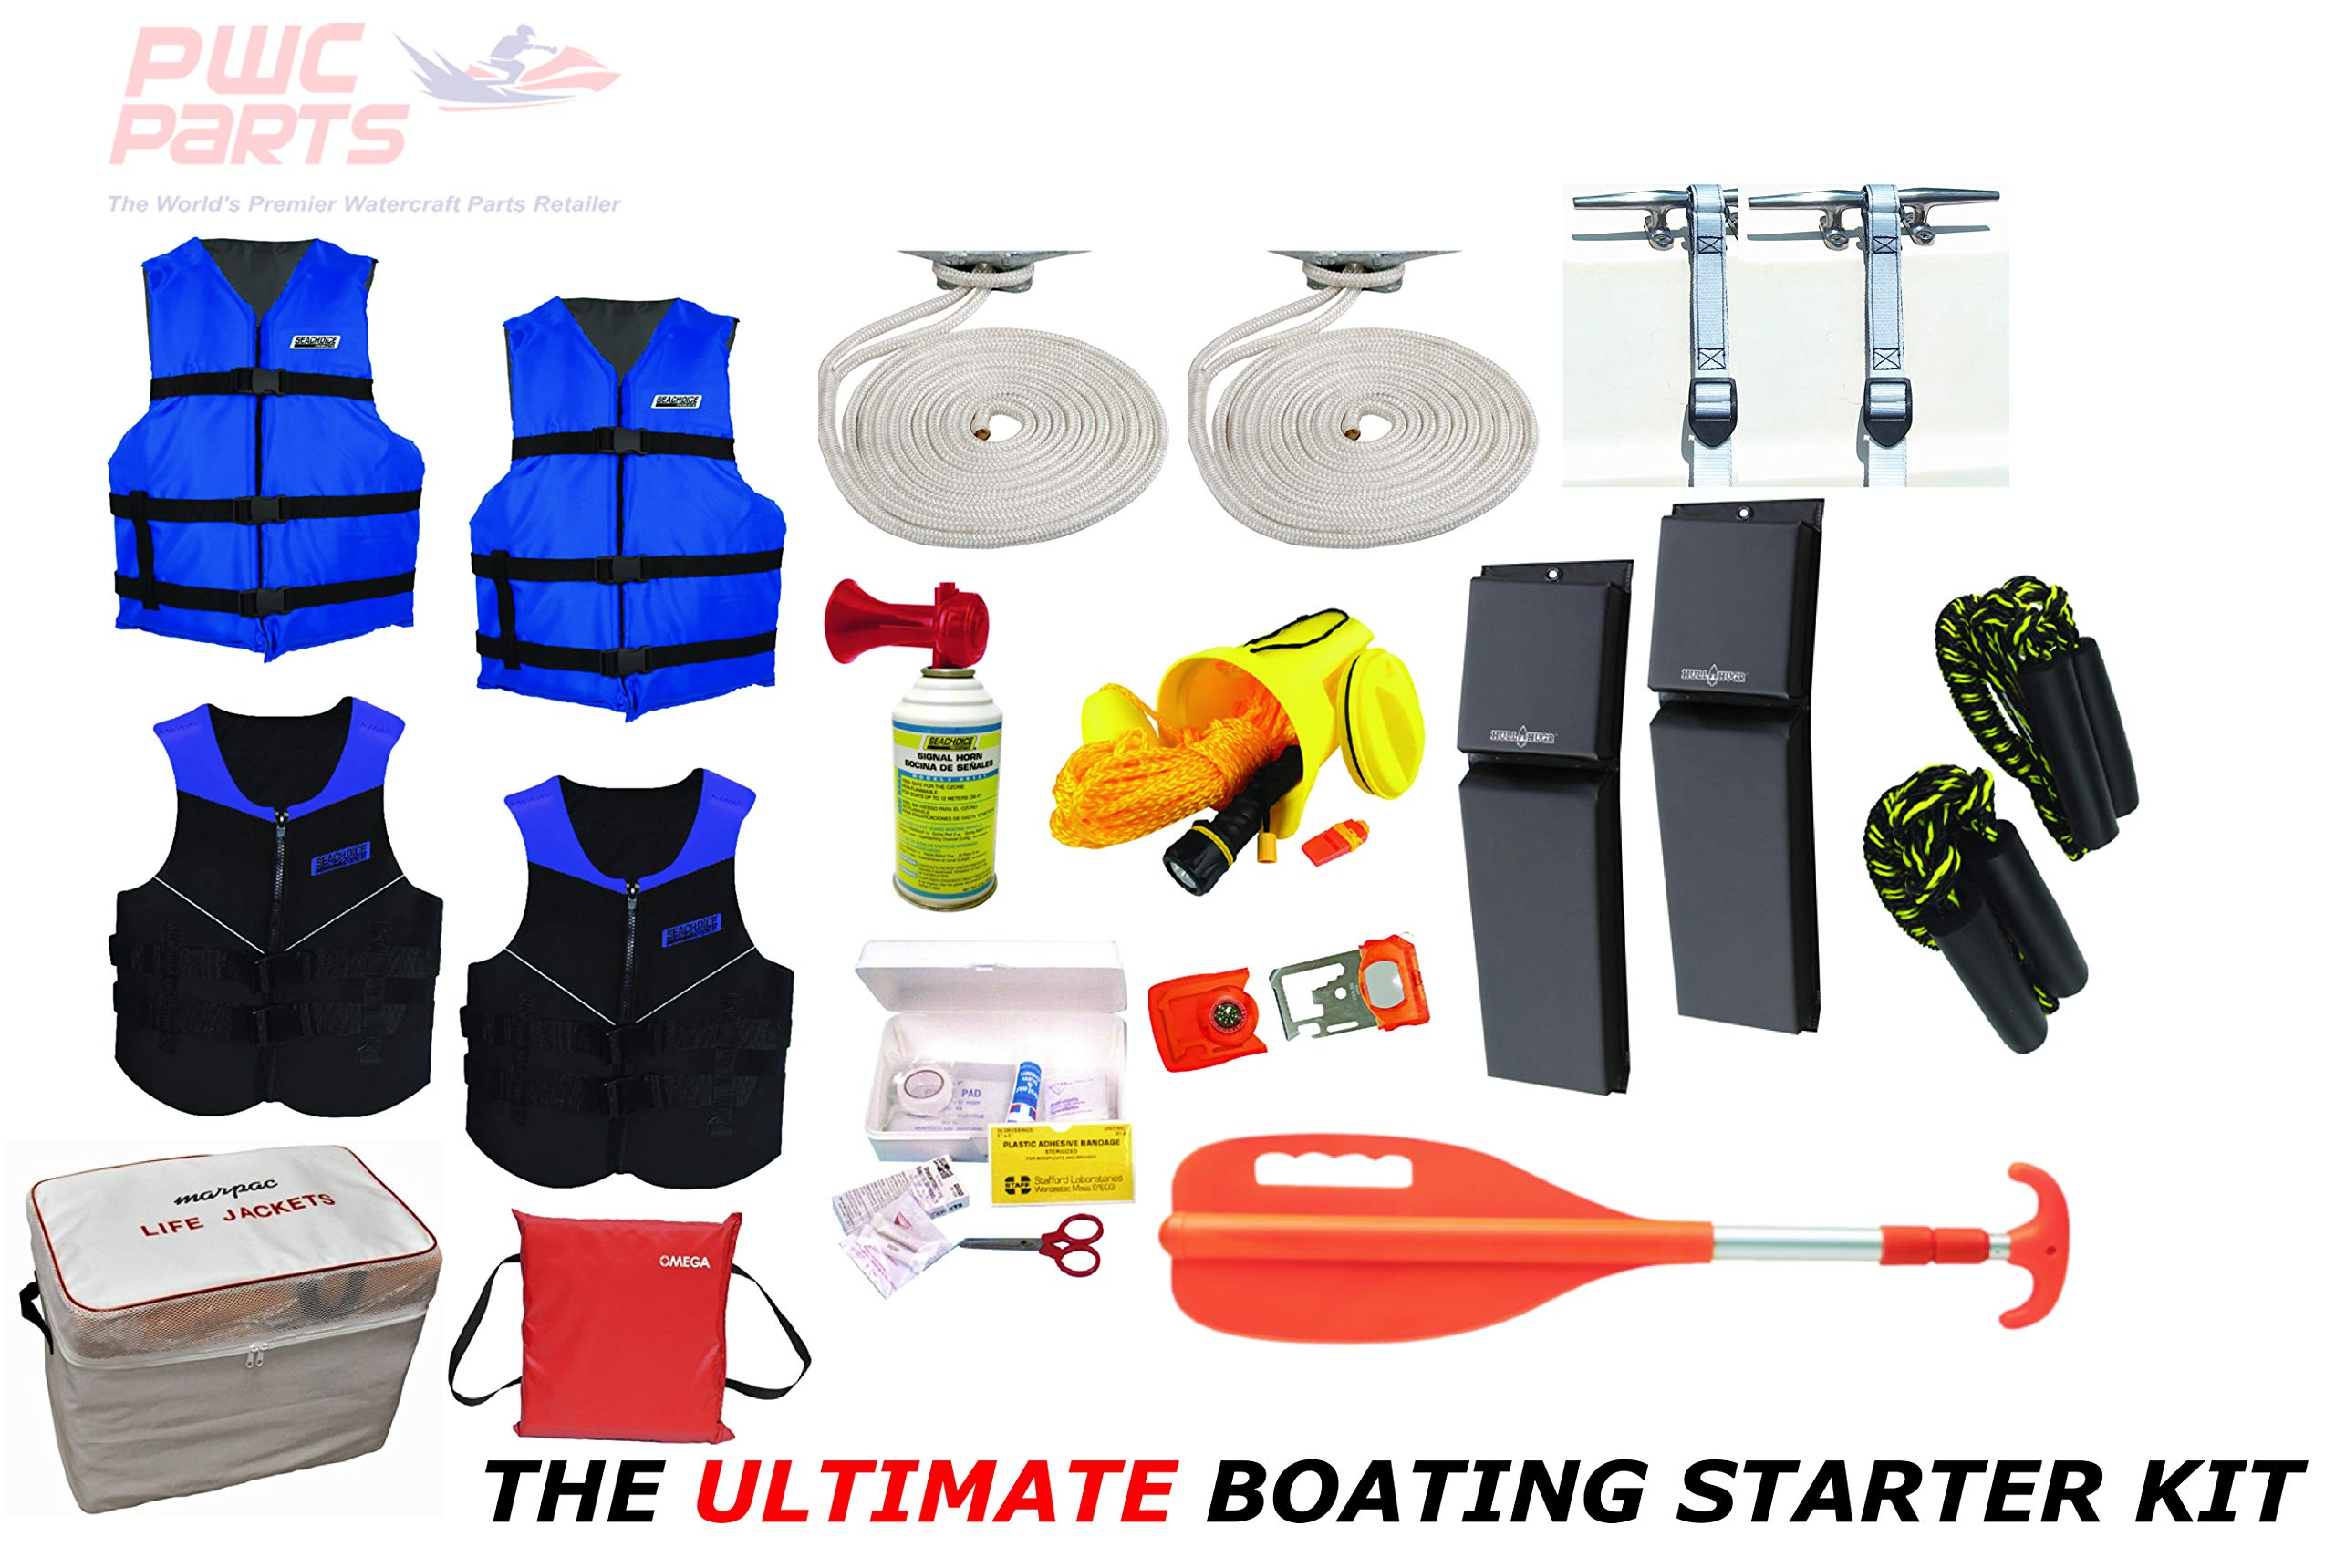 PWC Parts Ultimate Boating Starter Kit for All Boats w/Neoprene Life Jackets, Nyon Vests, Throw Cushion, 4X Dock Lines, Horn, Whistle, Contour Fenders, Gear Bag, First Aid Kit, Paddle (Infant) by PWC Parts Co